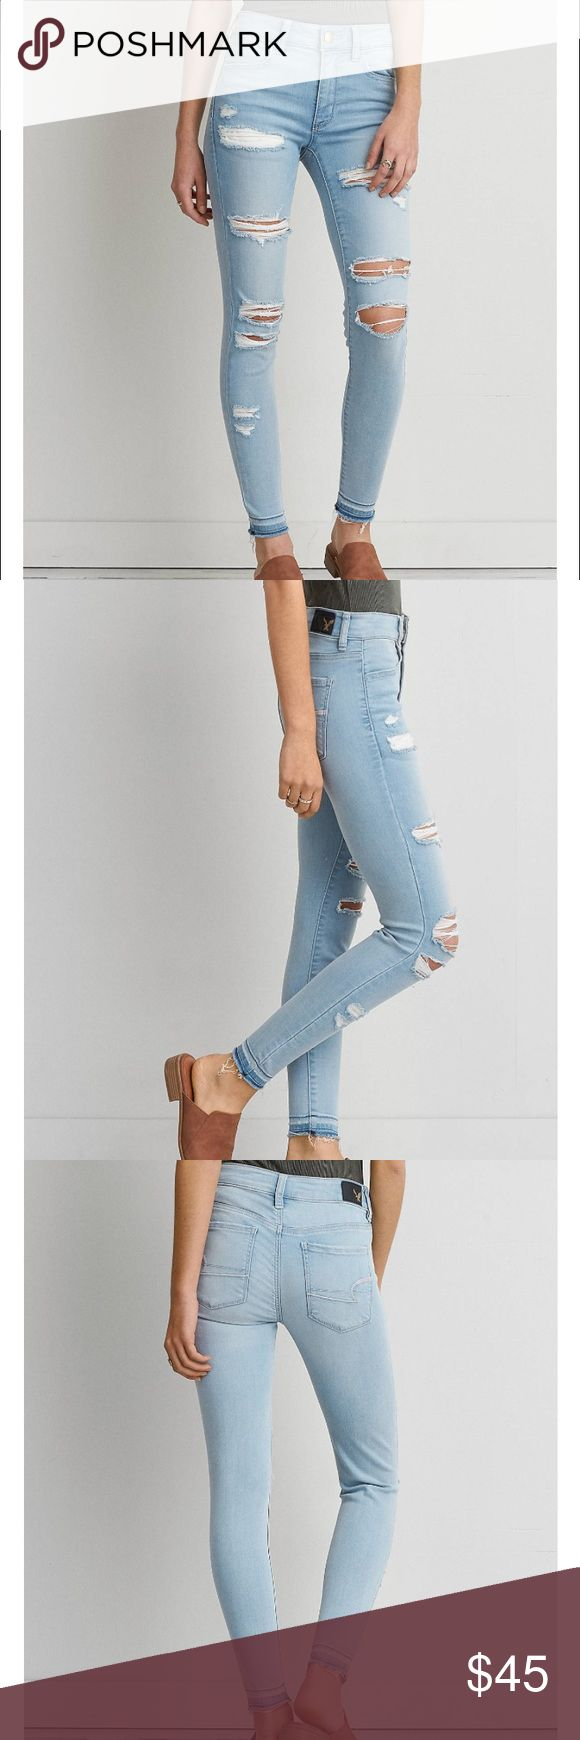 American Eagle Sateen X Hi-Rise Jegging NWT IN BAG Super soft American Eagle Jeggings brand new, never even taken out of shipping bag. Light wash distressed sateen denim. These are a 2 short, sold out in stores and online! American Eagle Outfitters Jeans Skinny